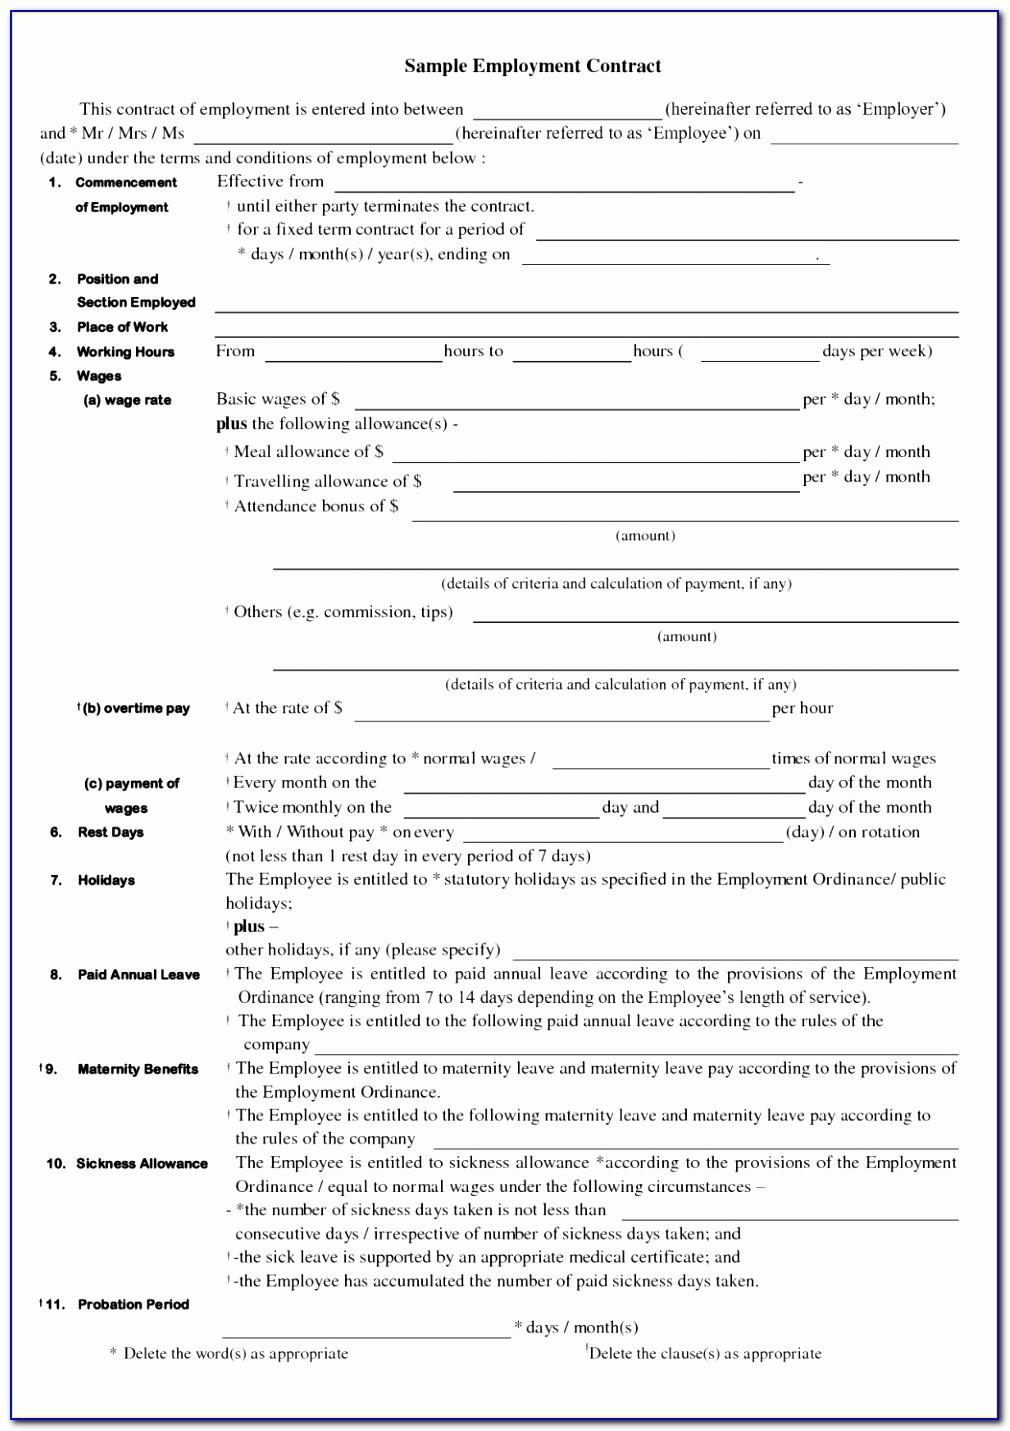 Separation Agreement Template Maryland